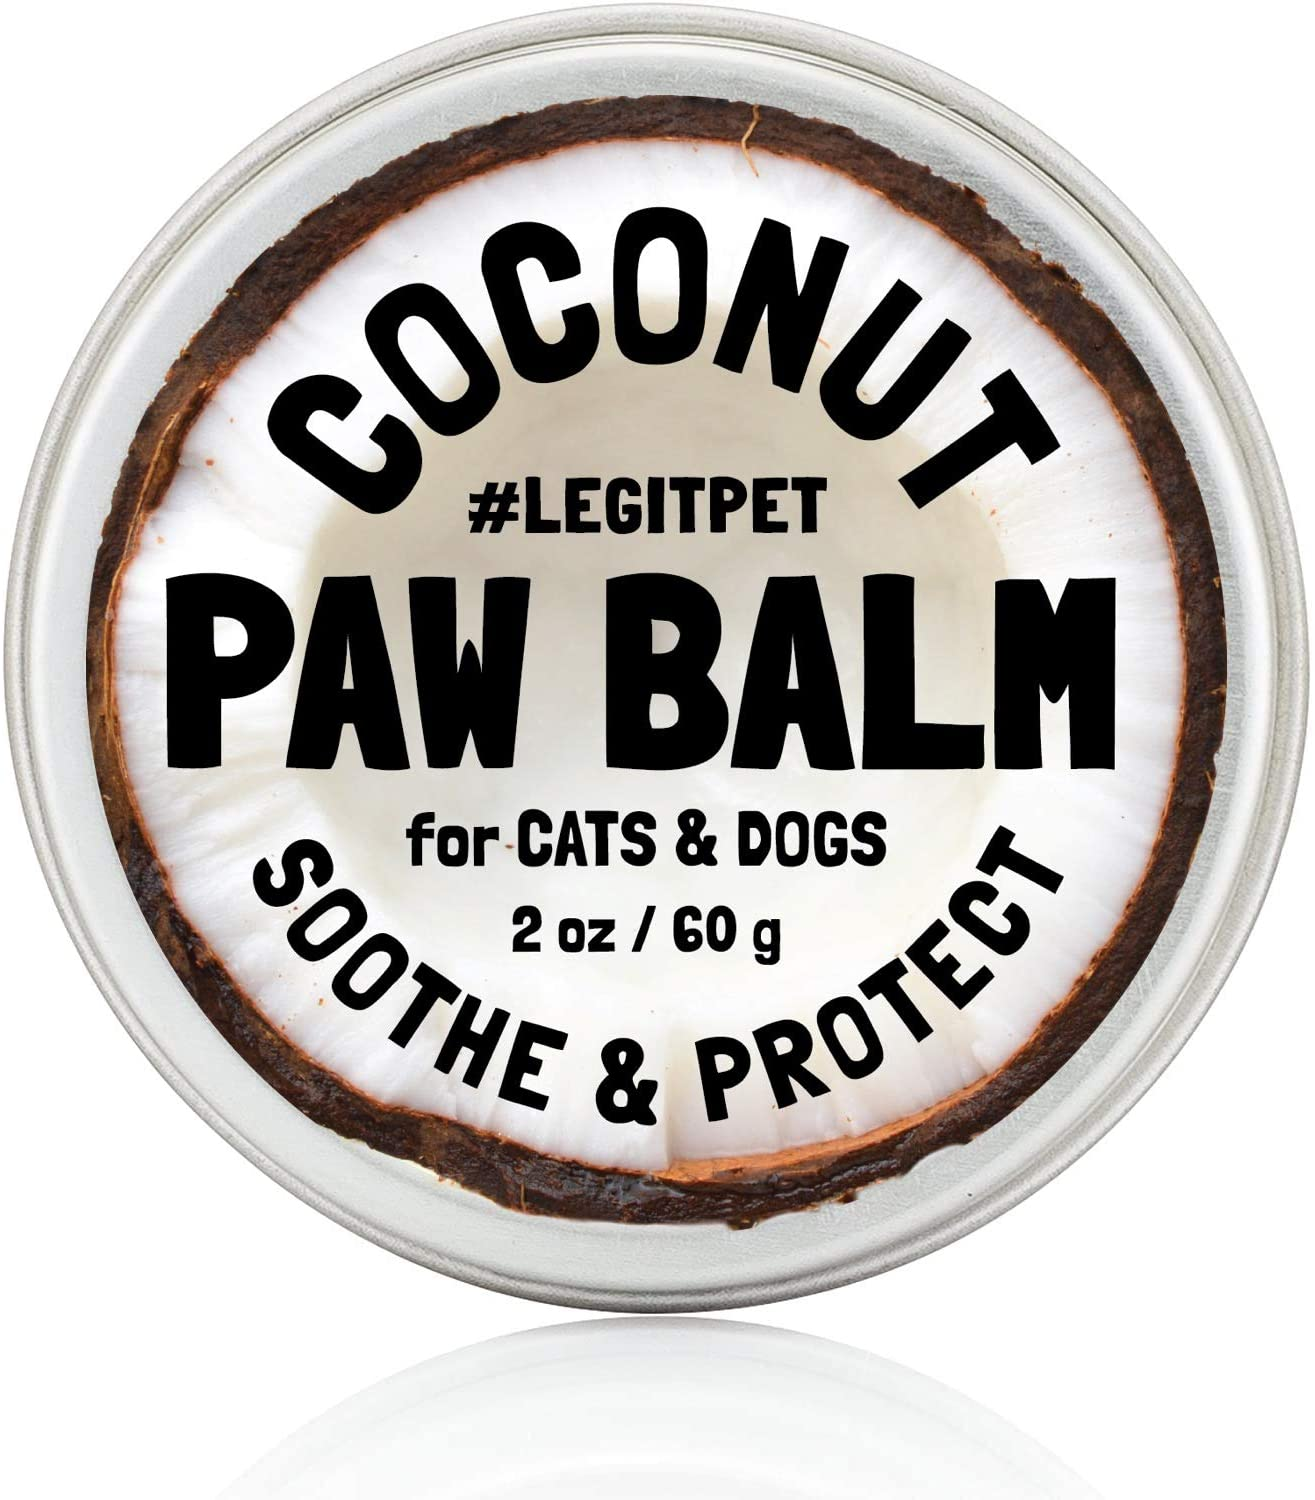 Dog Paw Balm Wax Soother & Moisturizer Cream with Natural Food-Grade Coconut Oil, Organic Shea Butter & Beeswax - 2 oz - Healing Protector for Cracked Dog Paws, Snout & Elbows